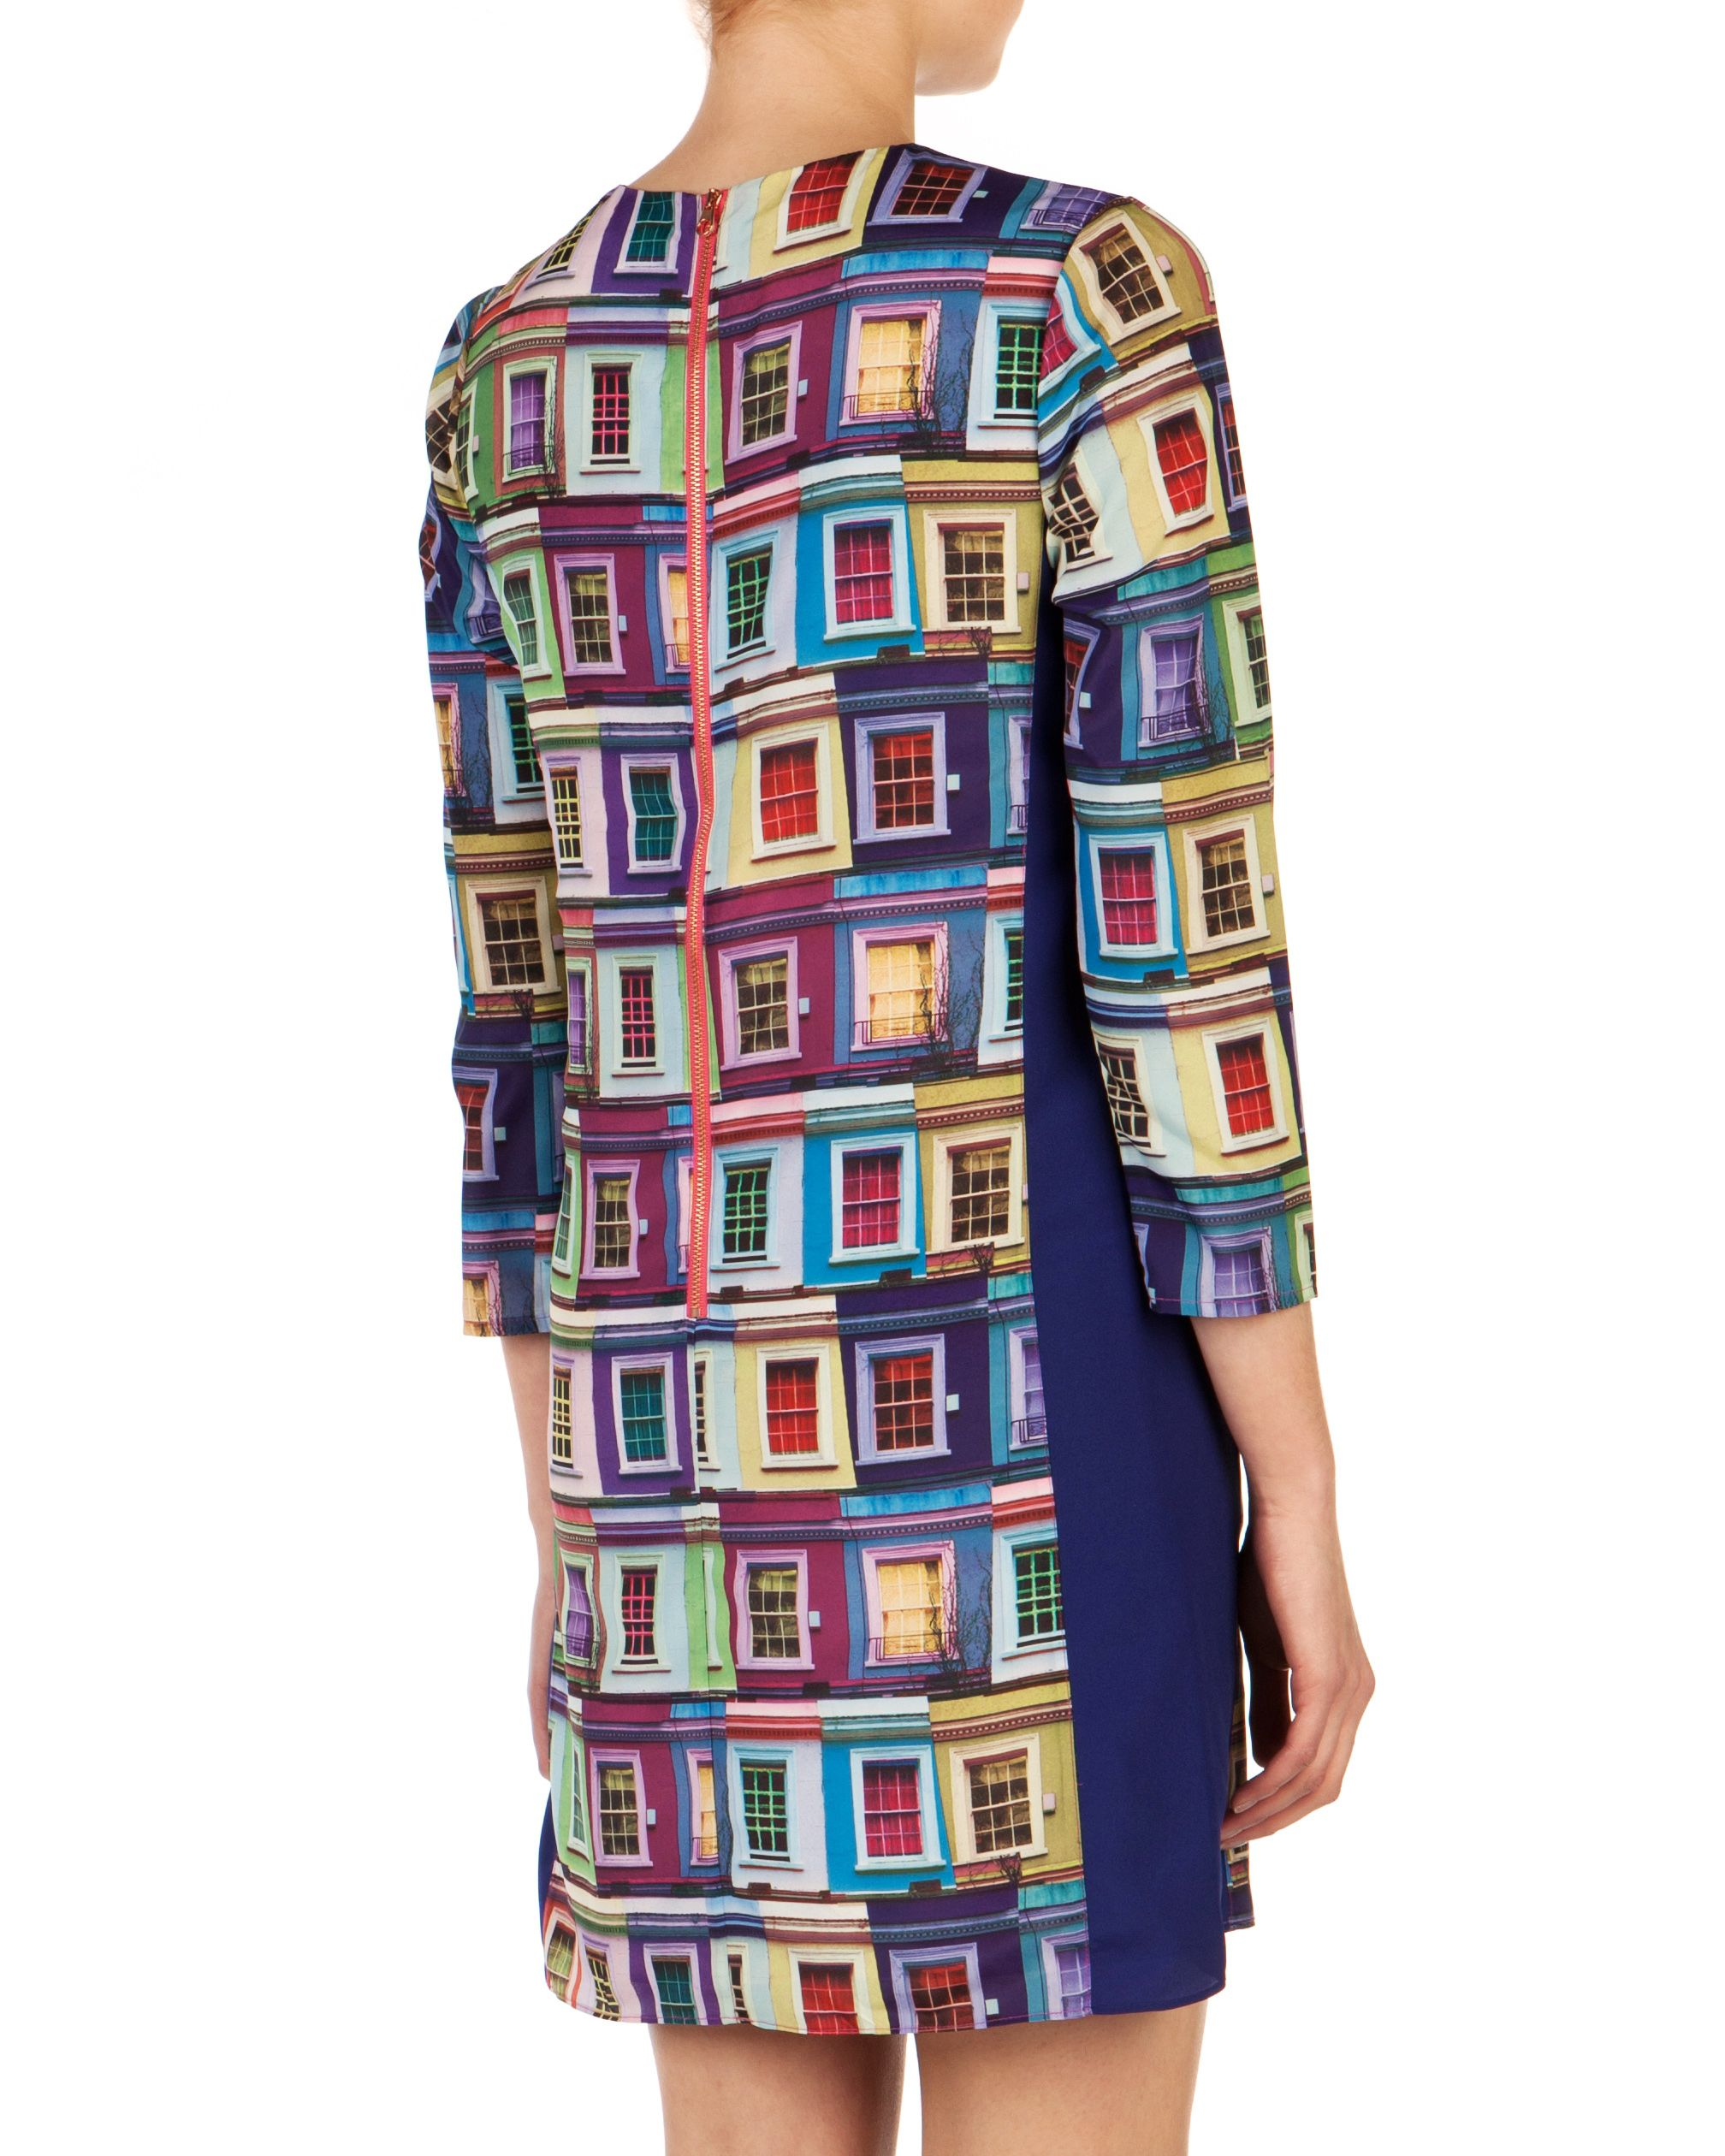 Jupi rainbow viewpoint dress